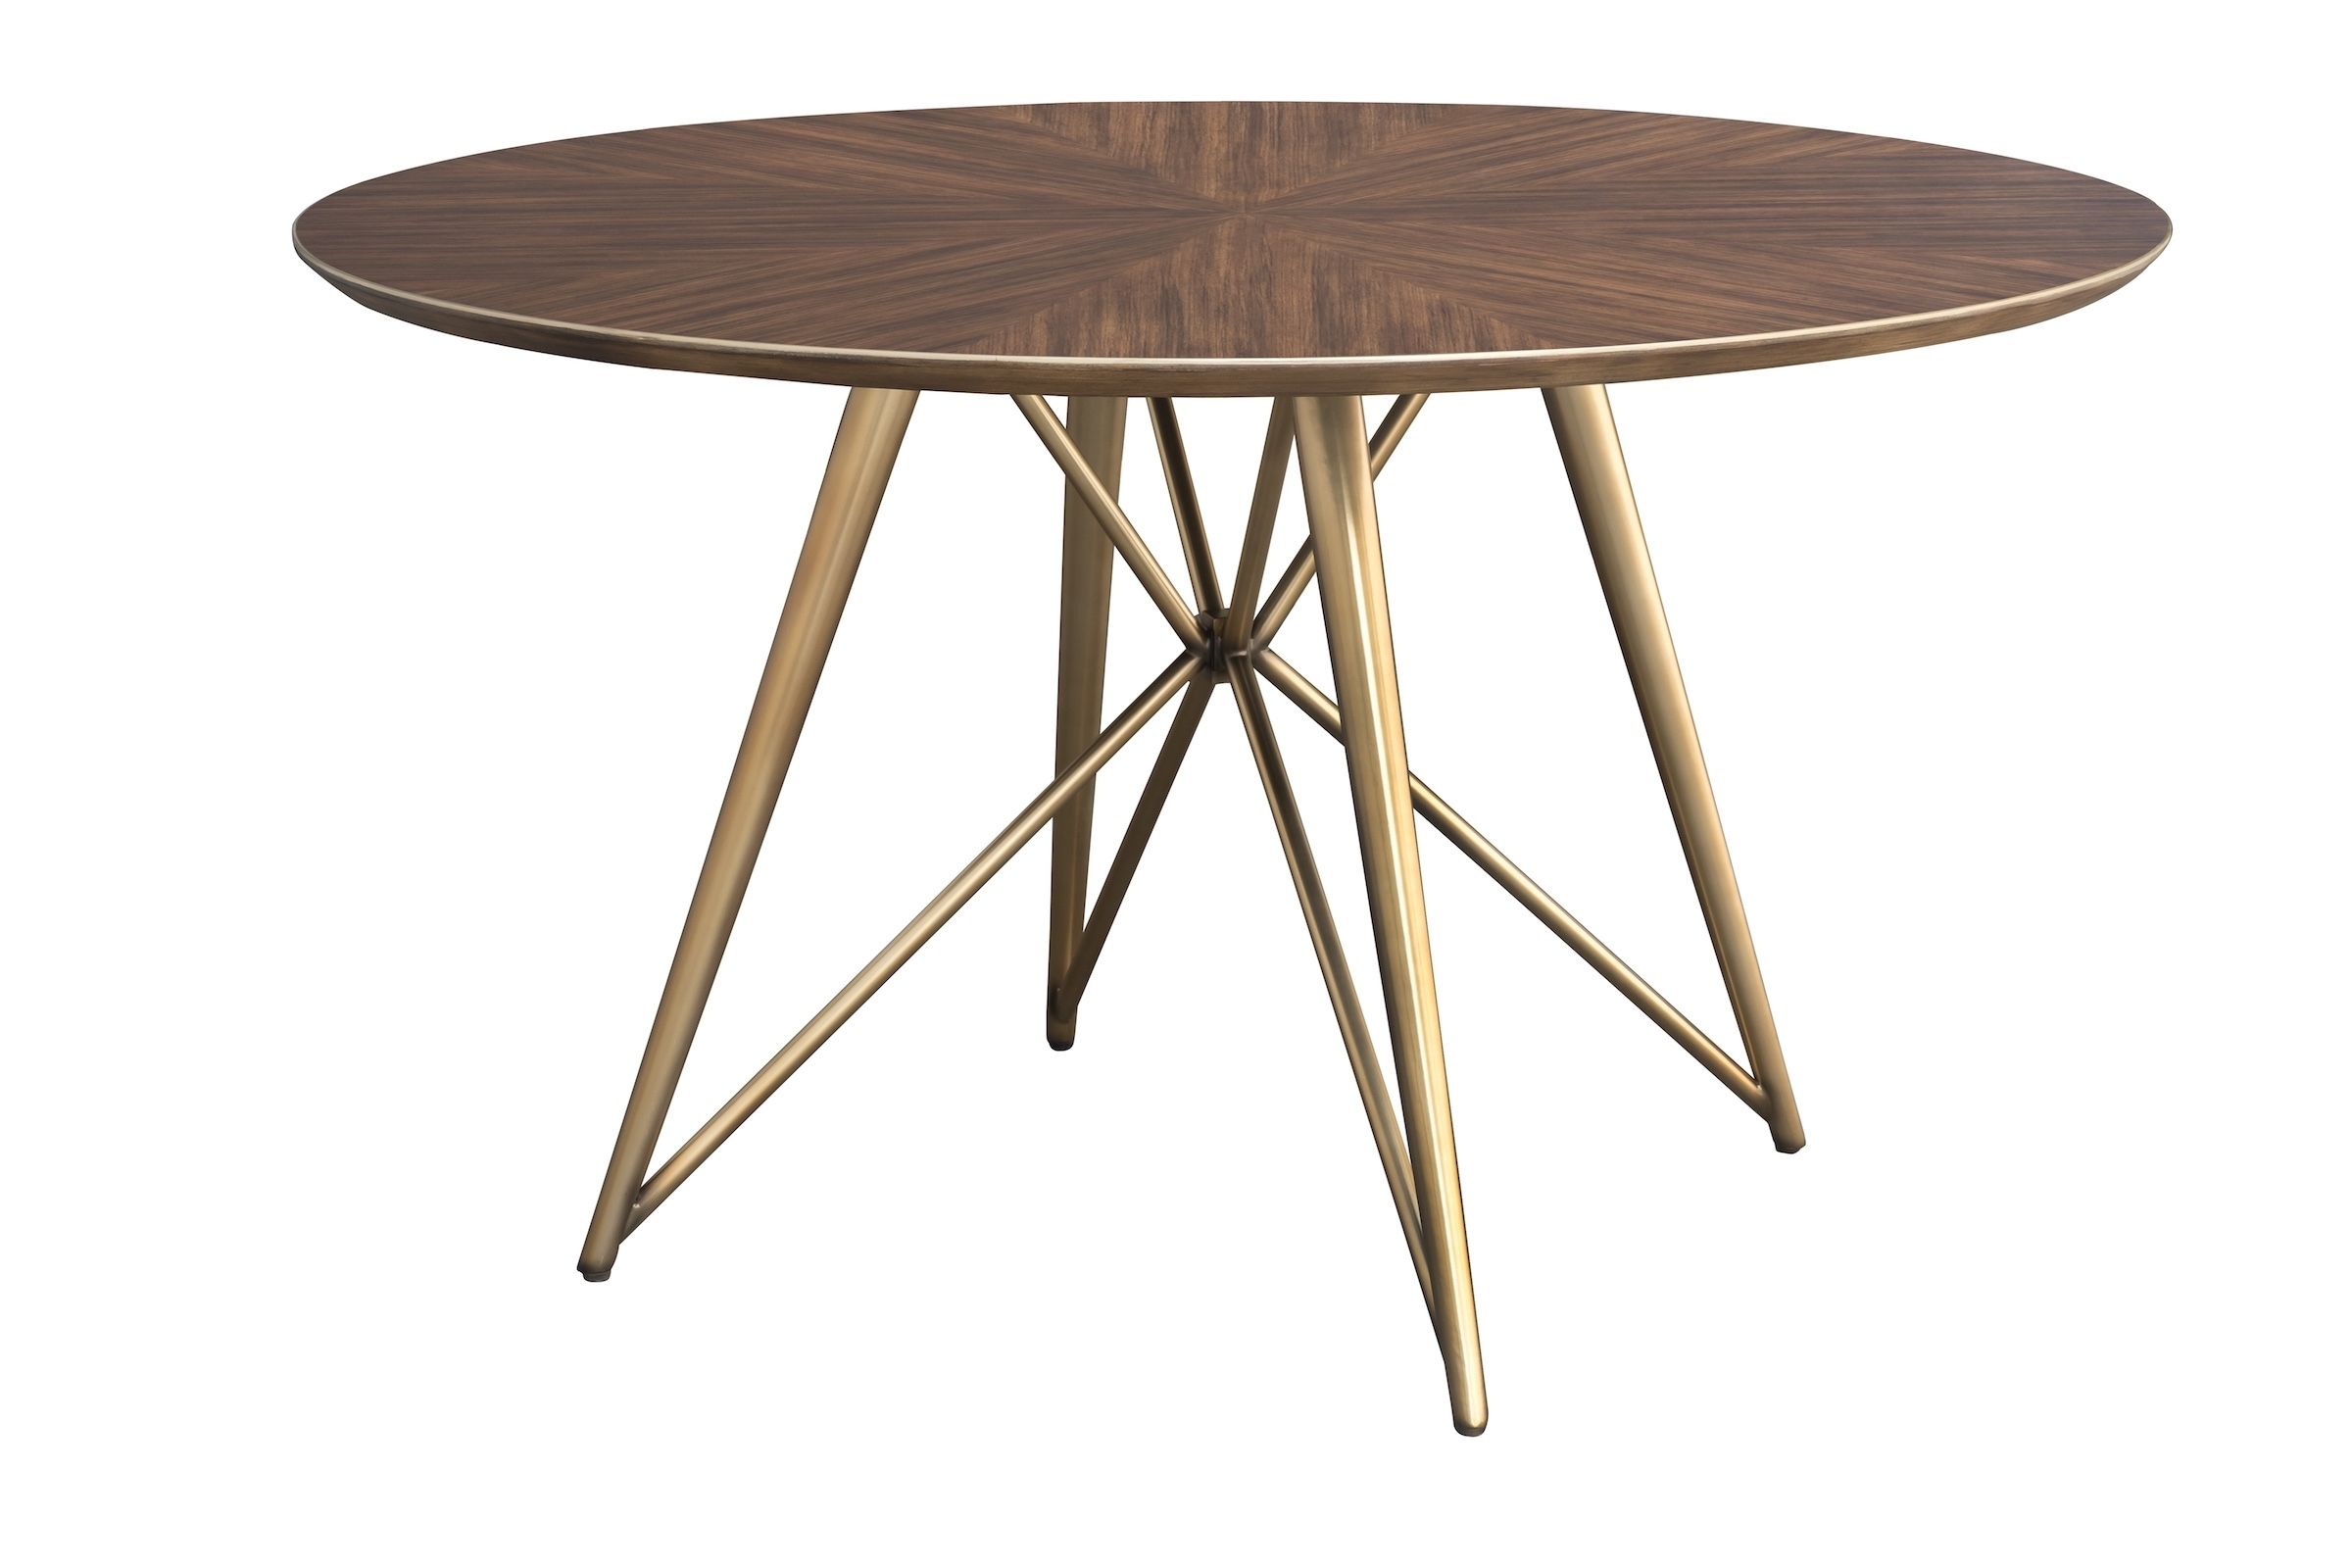 Fashionable Konrad 60 Inch Round Wood And Brass Round Dining Table In Portland 78 Inch Dining Tables (View 6 of 25)